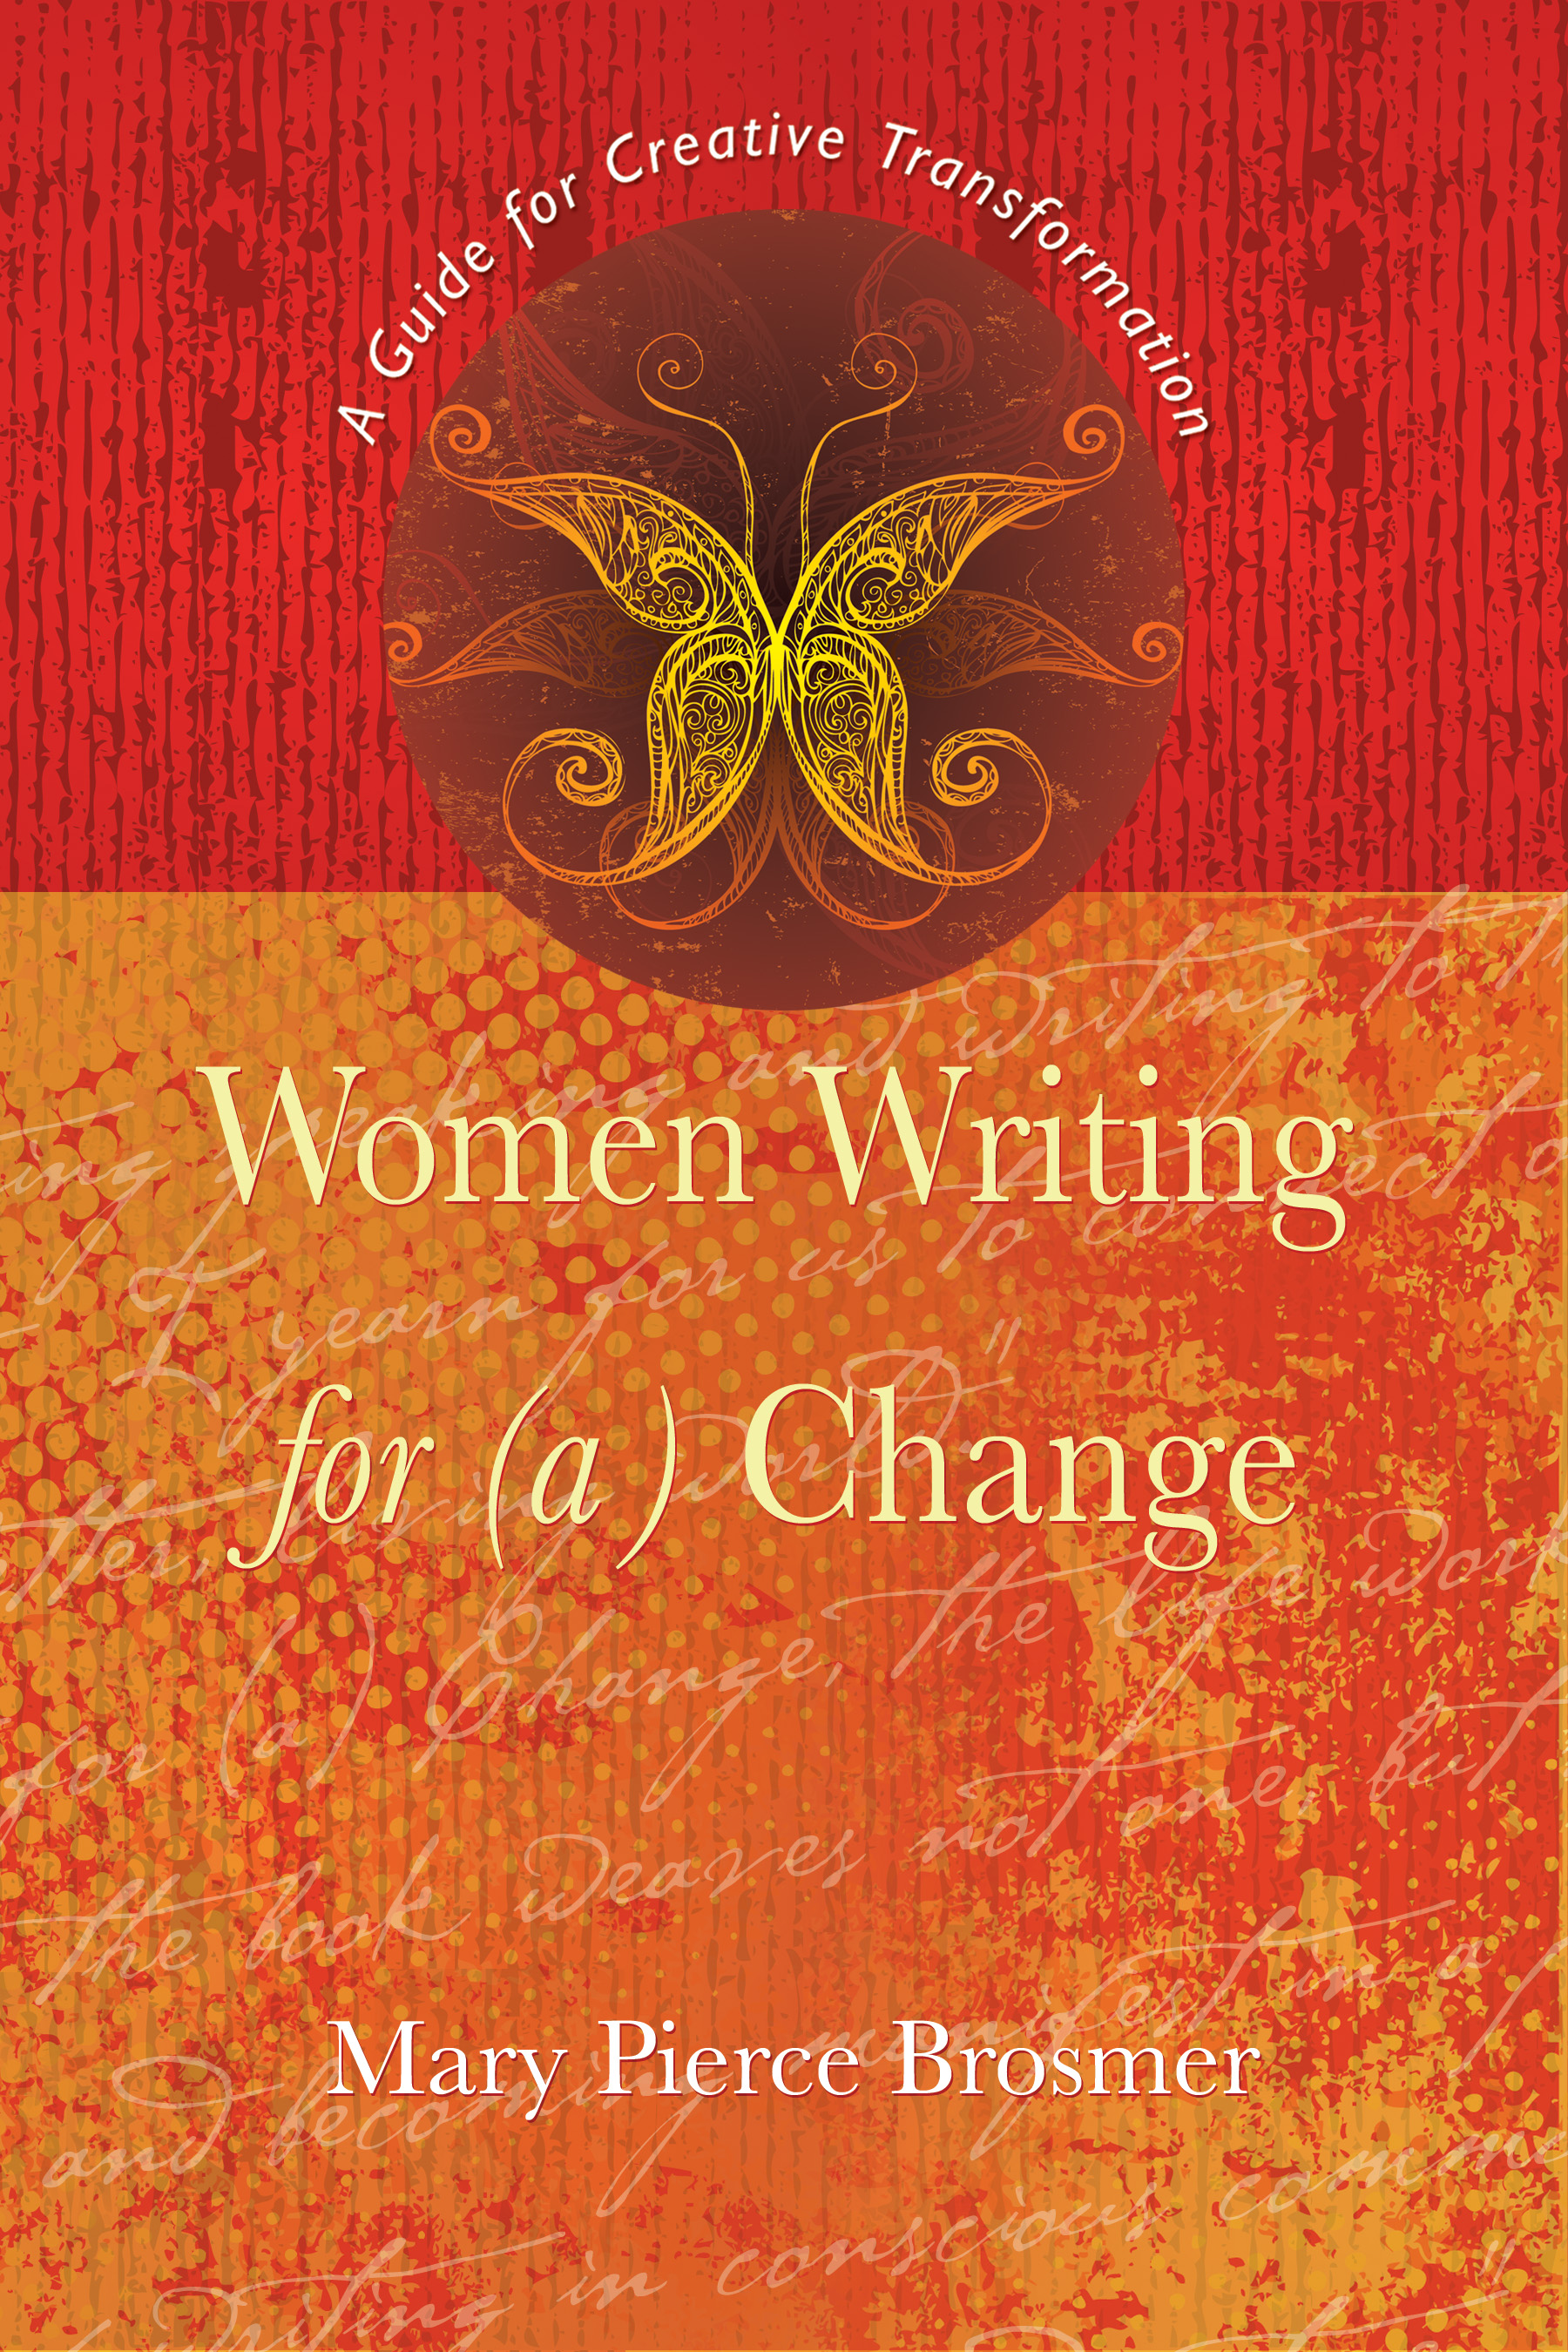 Women Writing for (a) Change